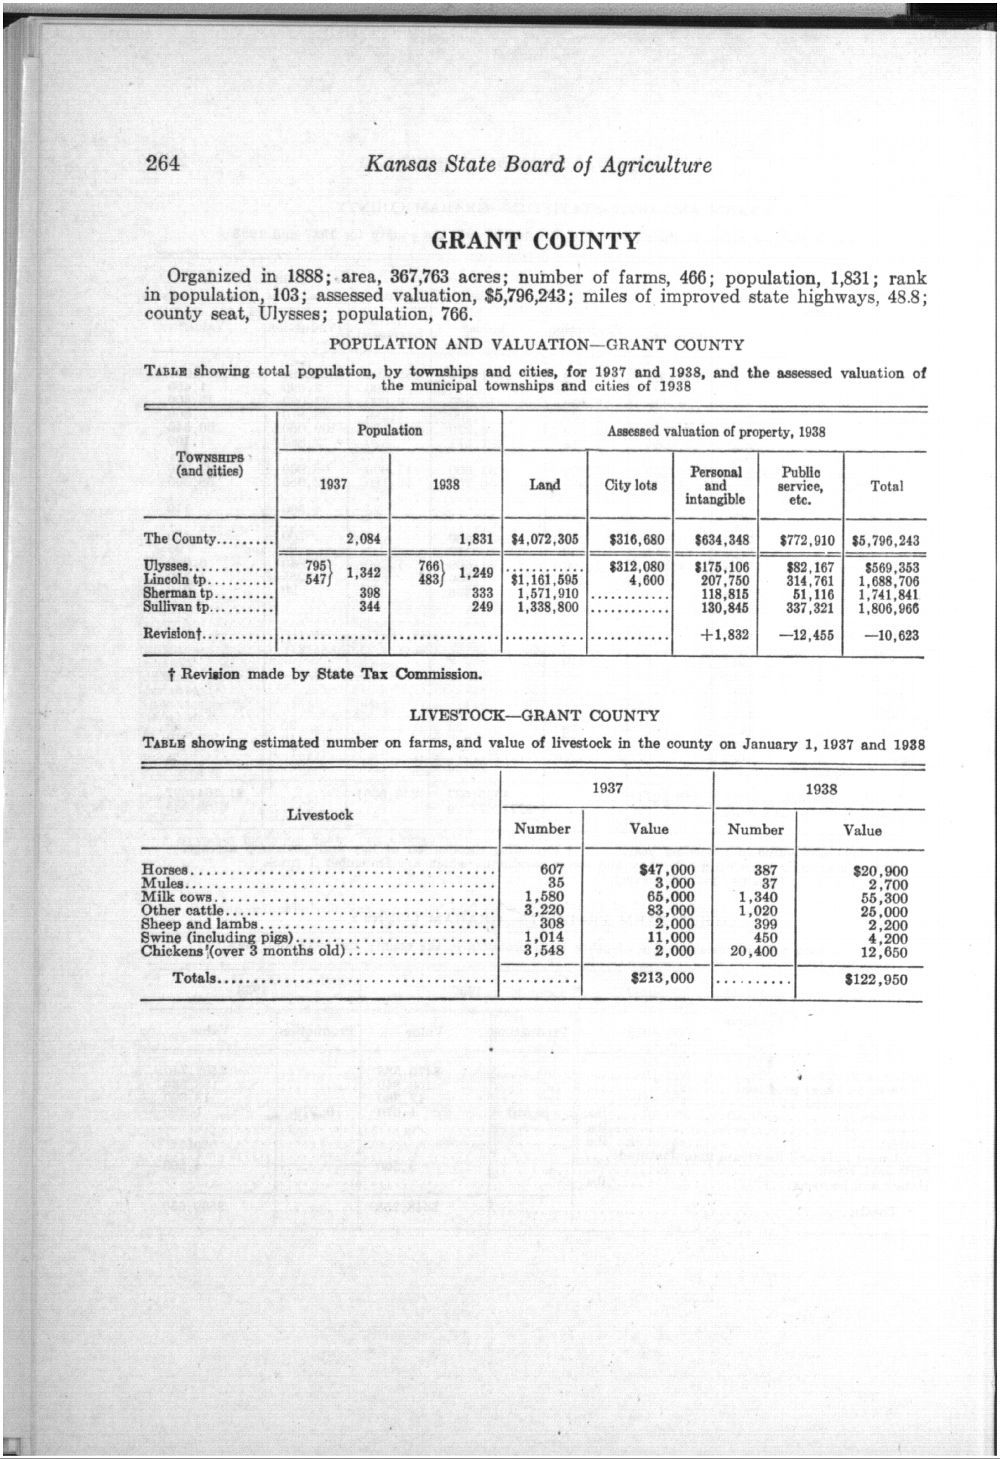 Thirty-first Biennial Report, Statistics by county showing population, acreage, production, and livestock, 1937-1938 - 264